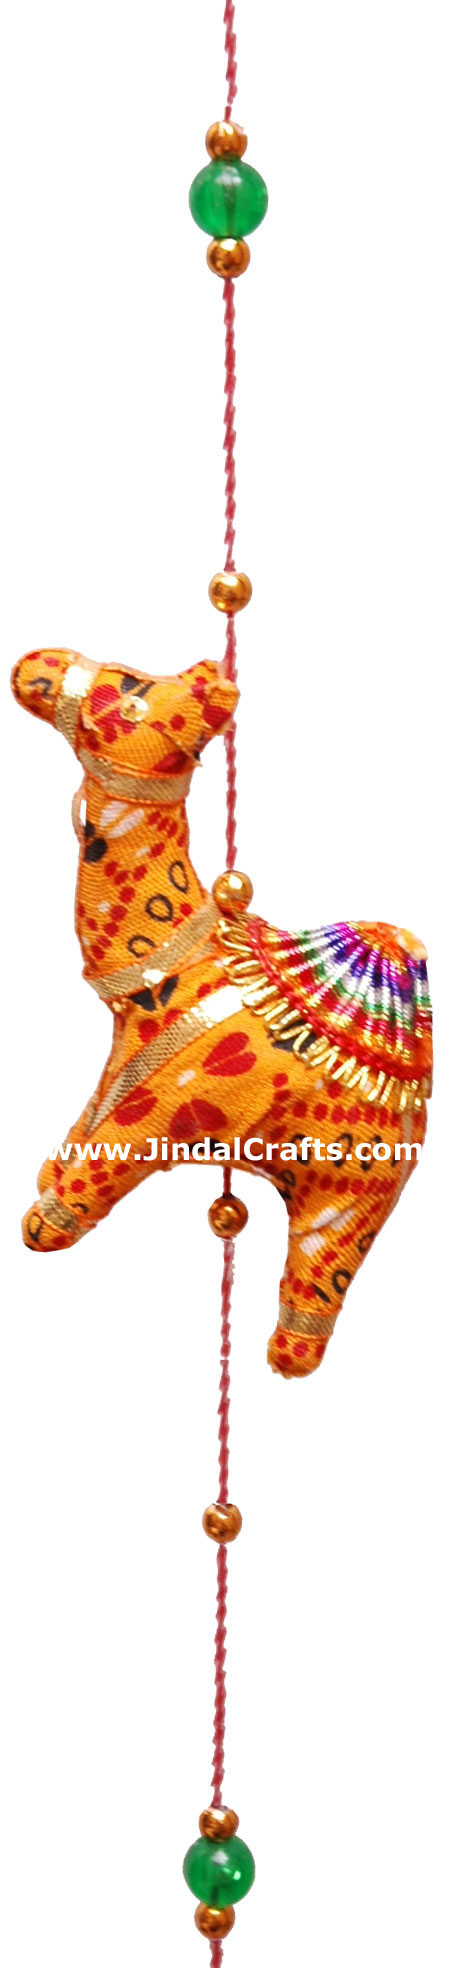 Hanging - Handmade Home Door Decoration from India